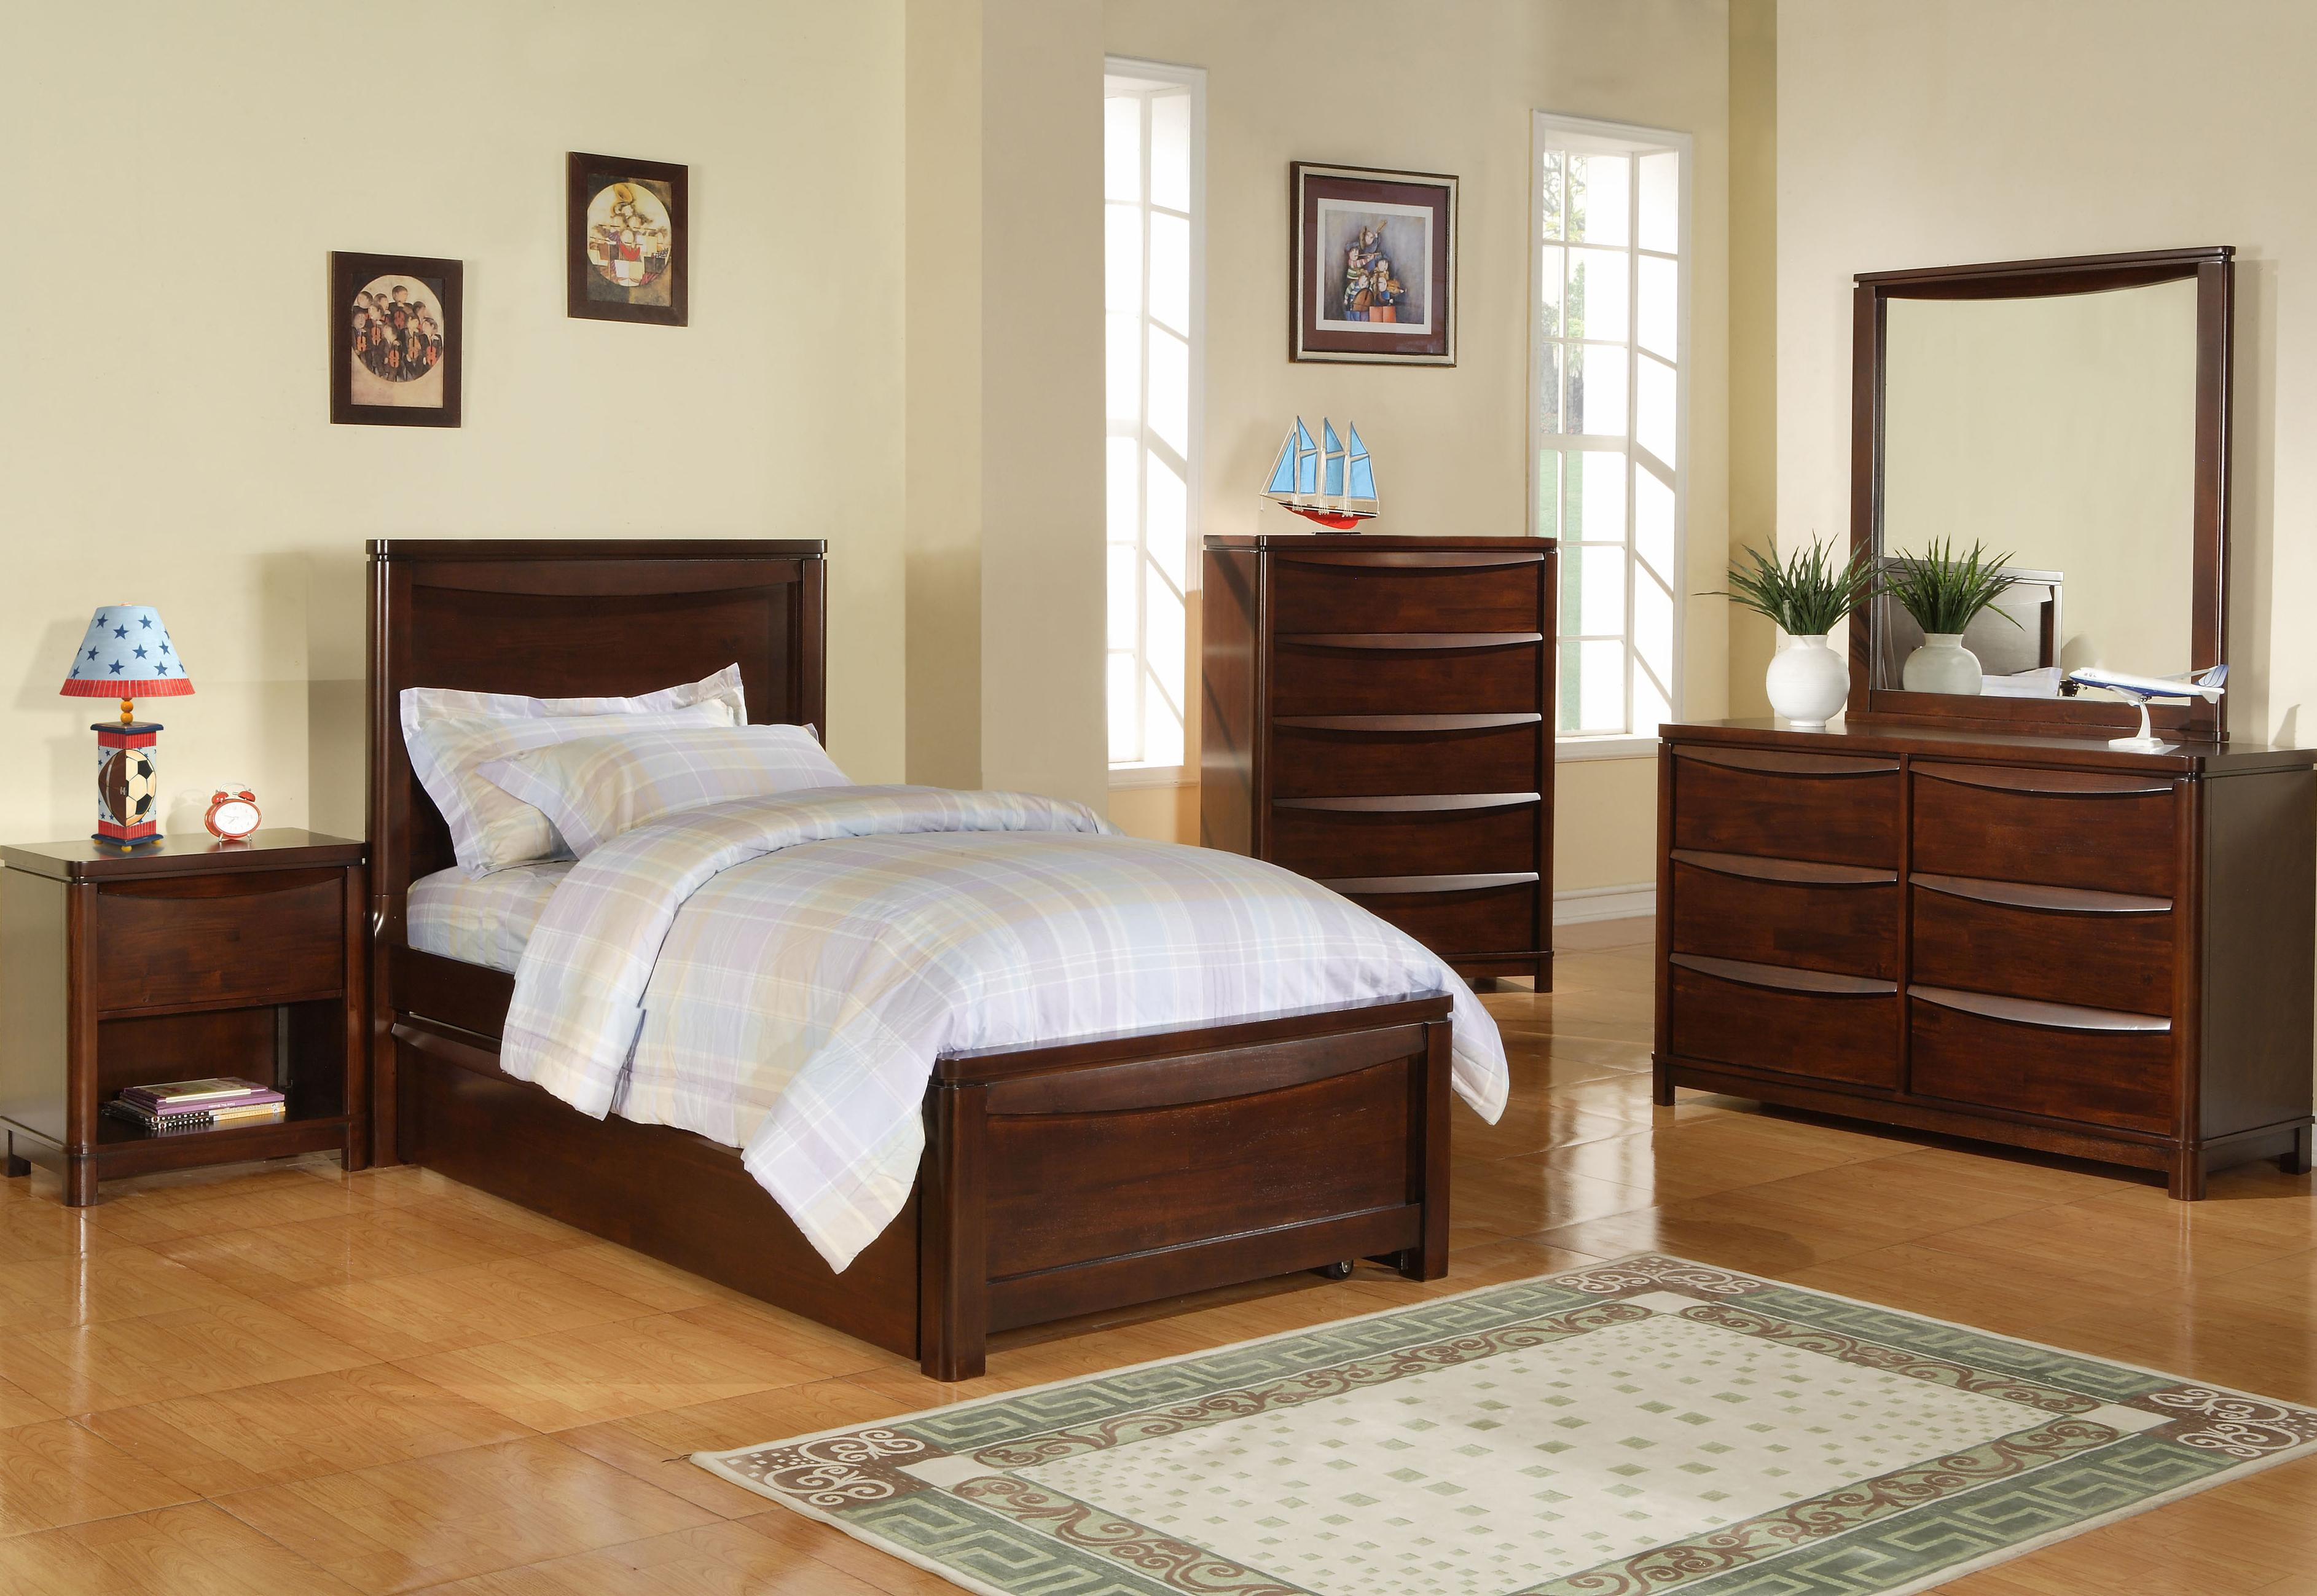 Greenville 2260 By Warehouse M Pilgrim Furniture City Warehouse M Greenville Dealer